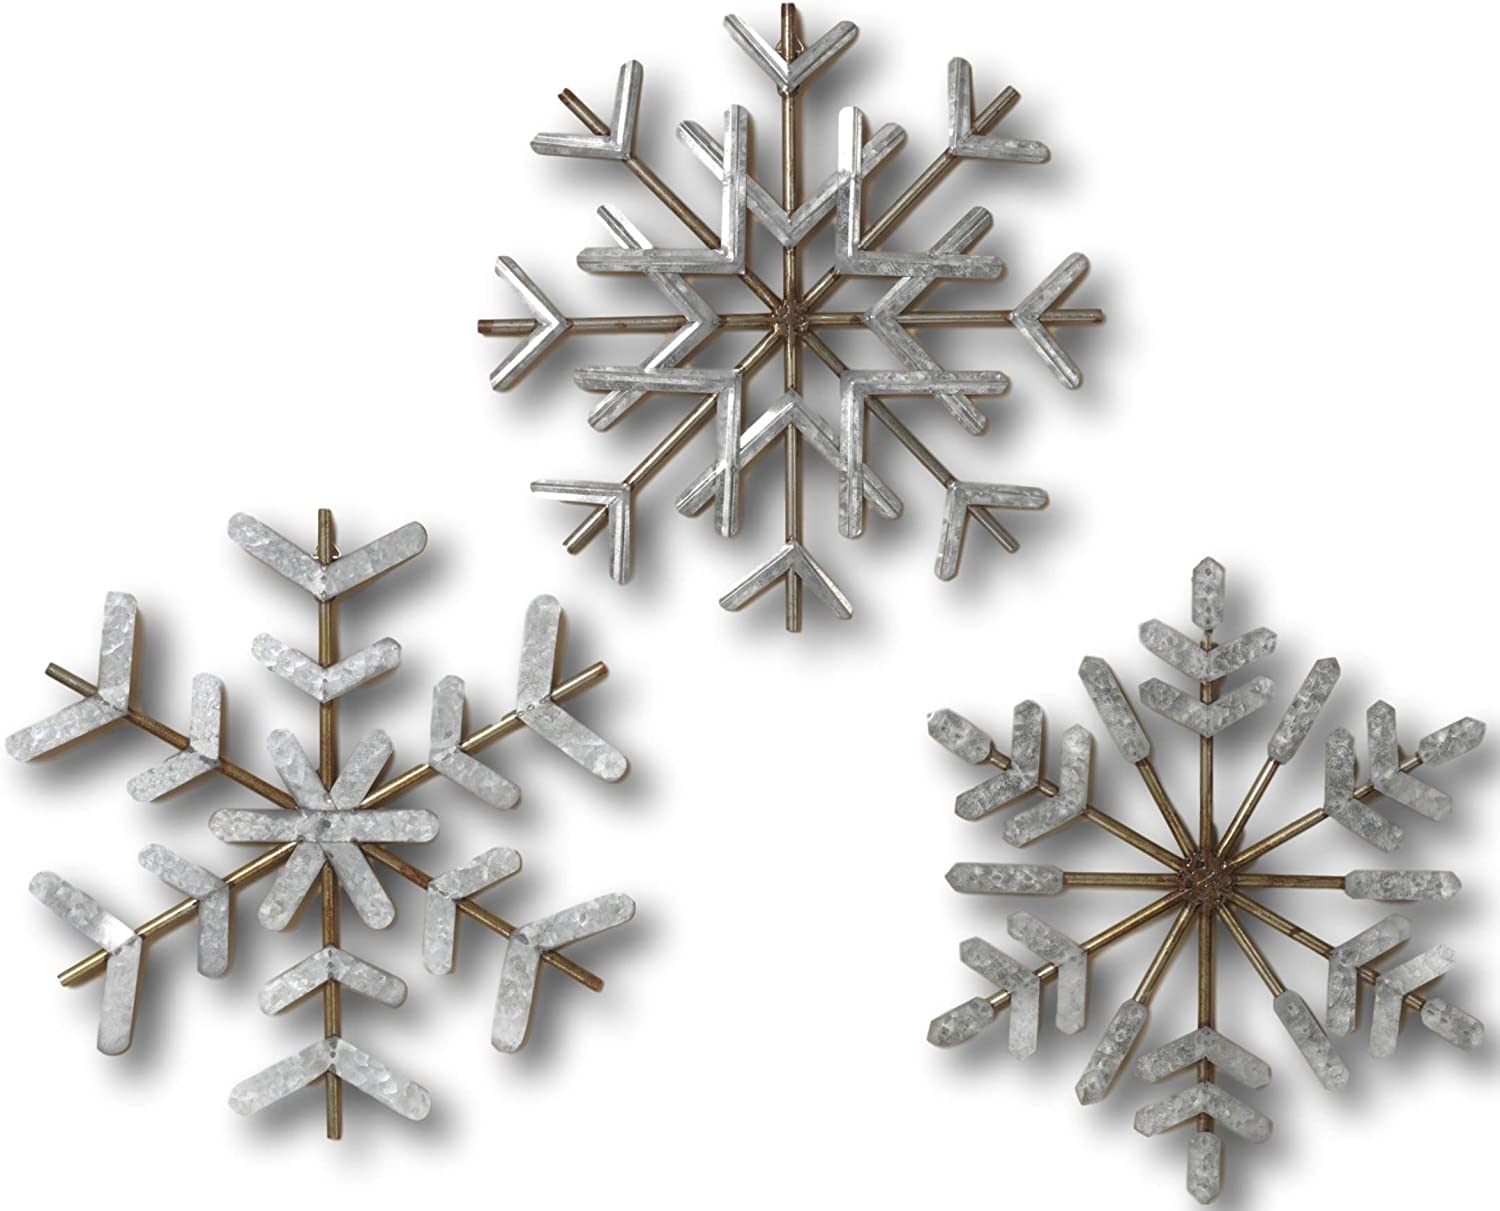 Gerson Set Of 3 Large 15 Galvanized Steel Metal Snowflakes Hanging Wall Decor Jumbo Christmas Ornaments Inside Or Outside Amazon Ca Home Kitchen